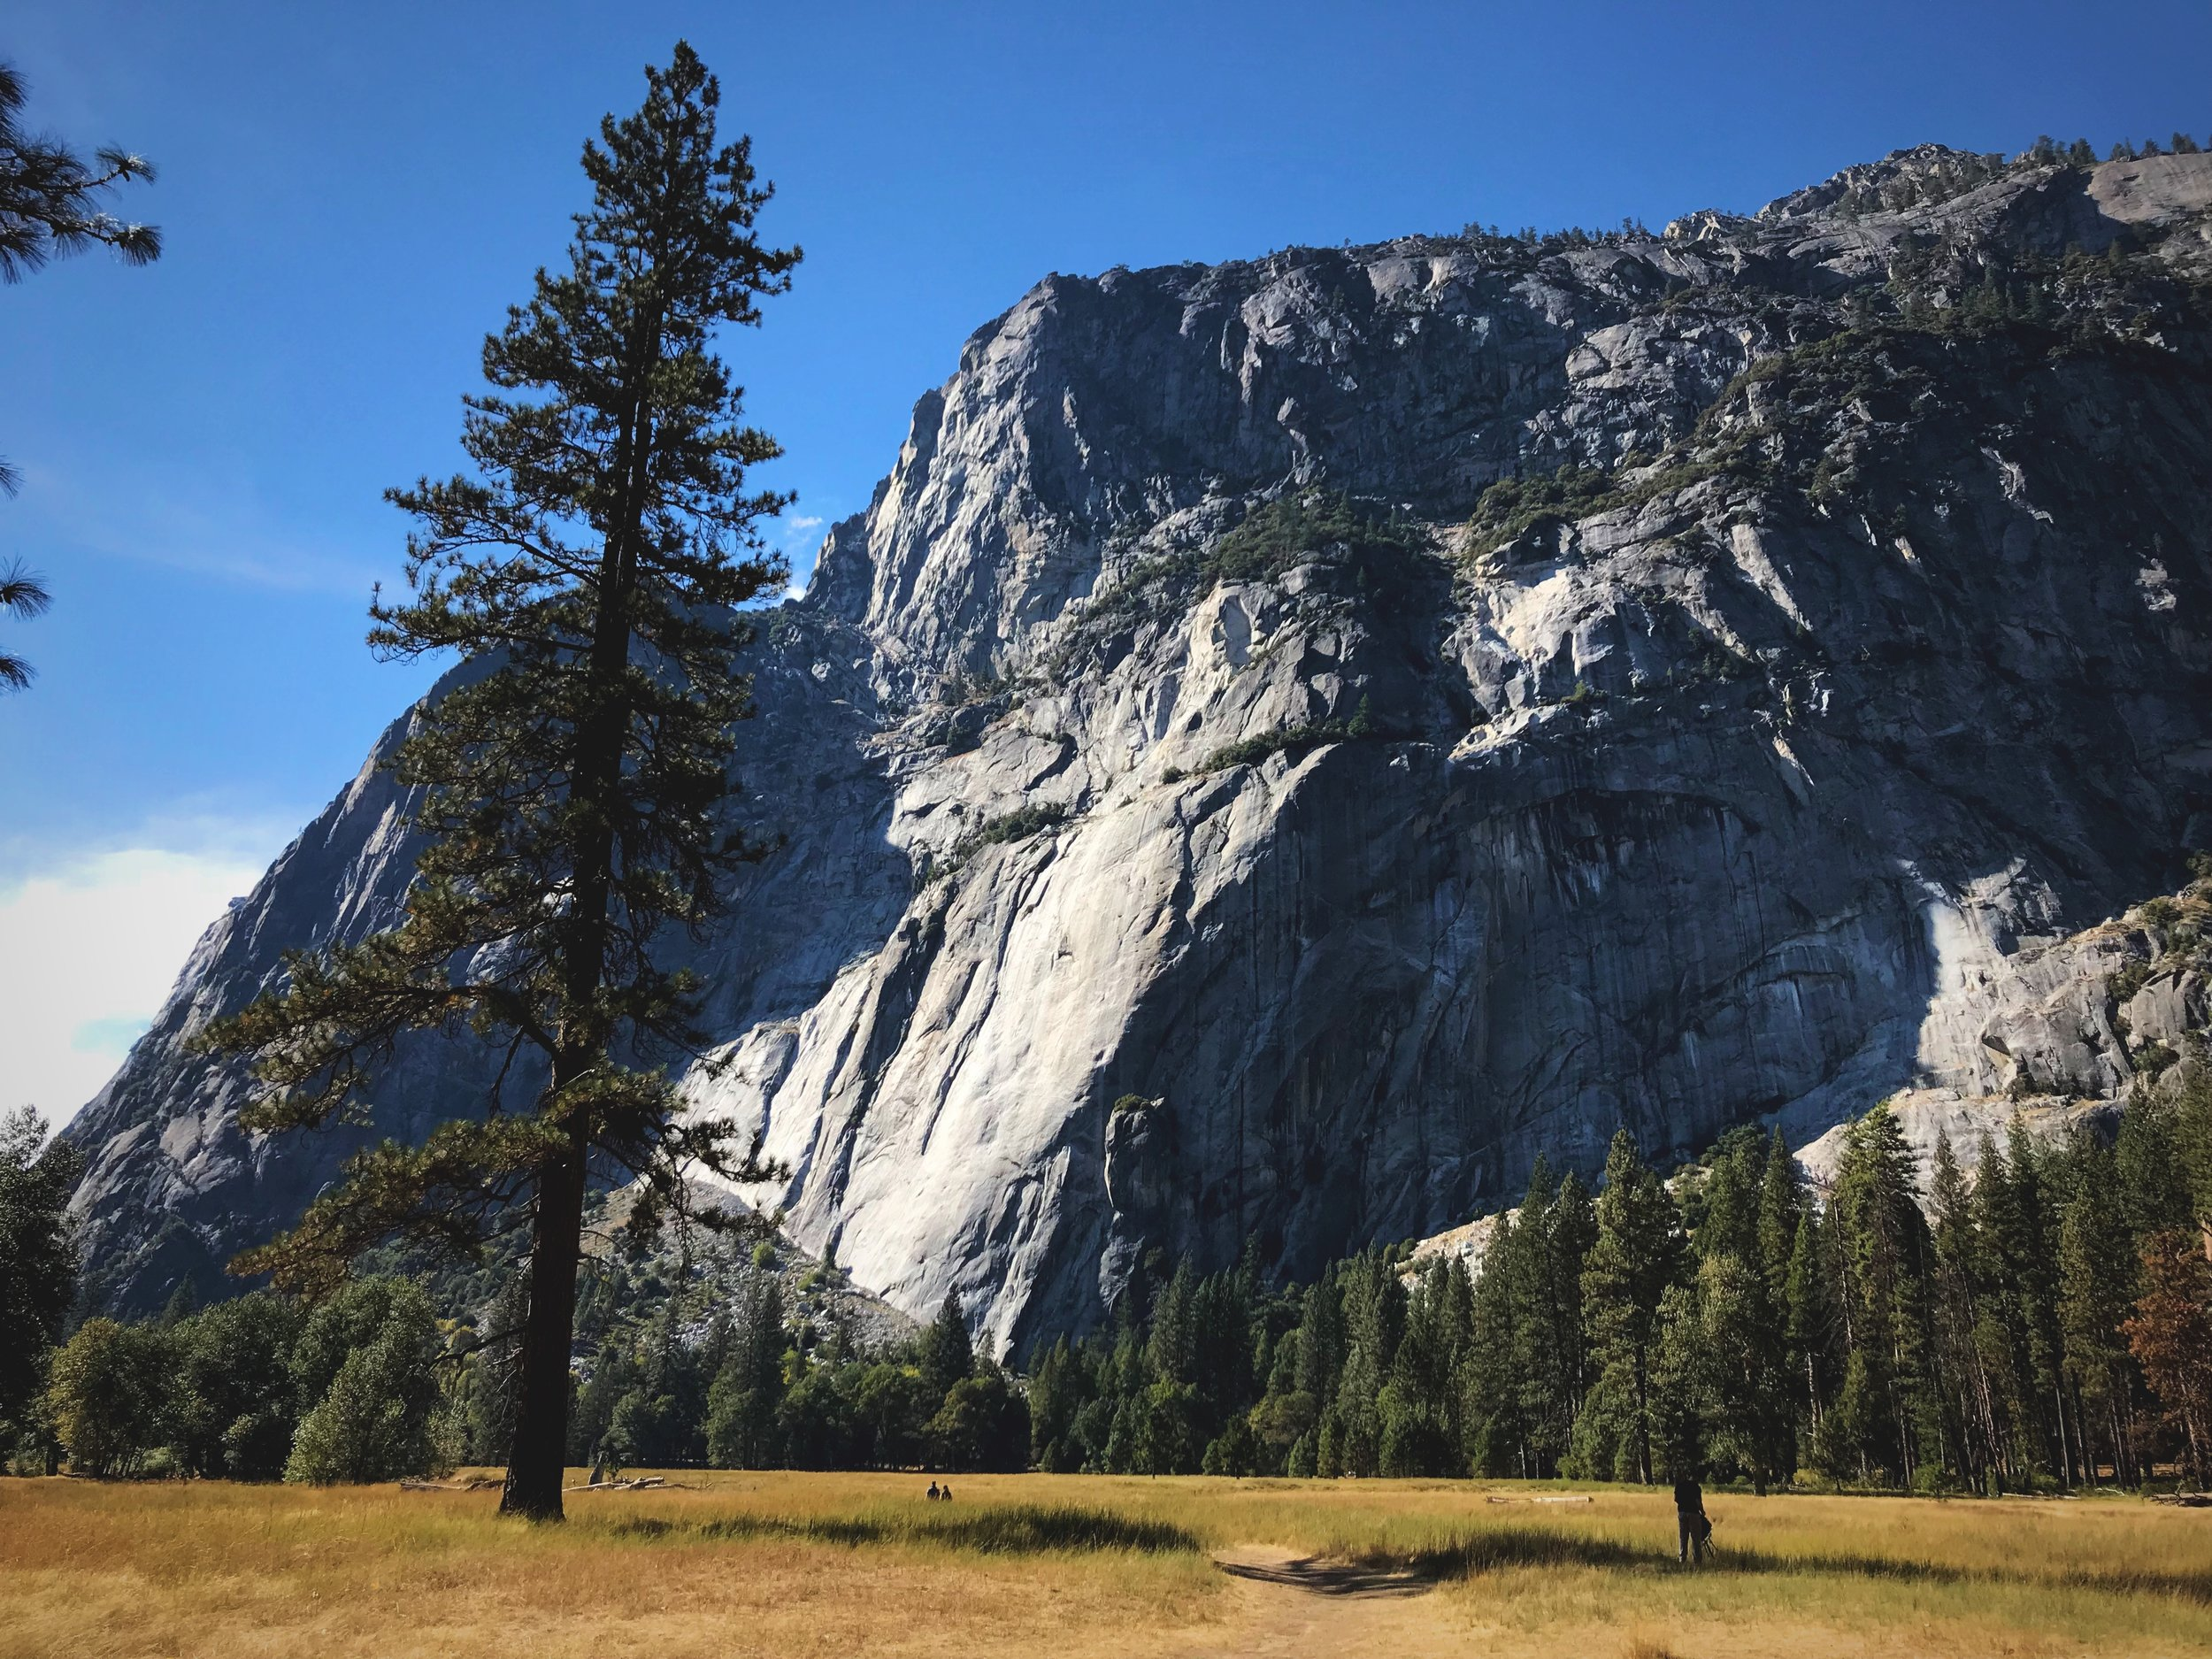 The Yosemite Valley floor is a great place to find flat trails in Yosemite.